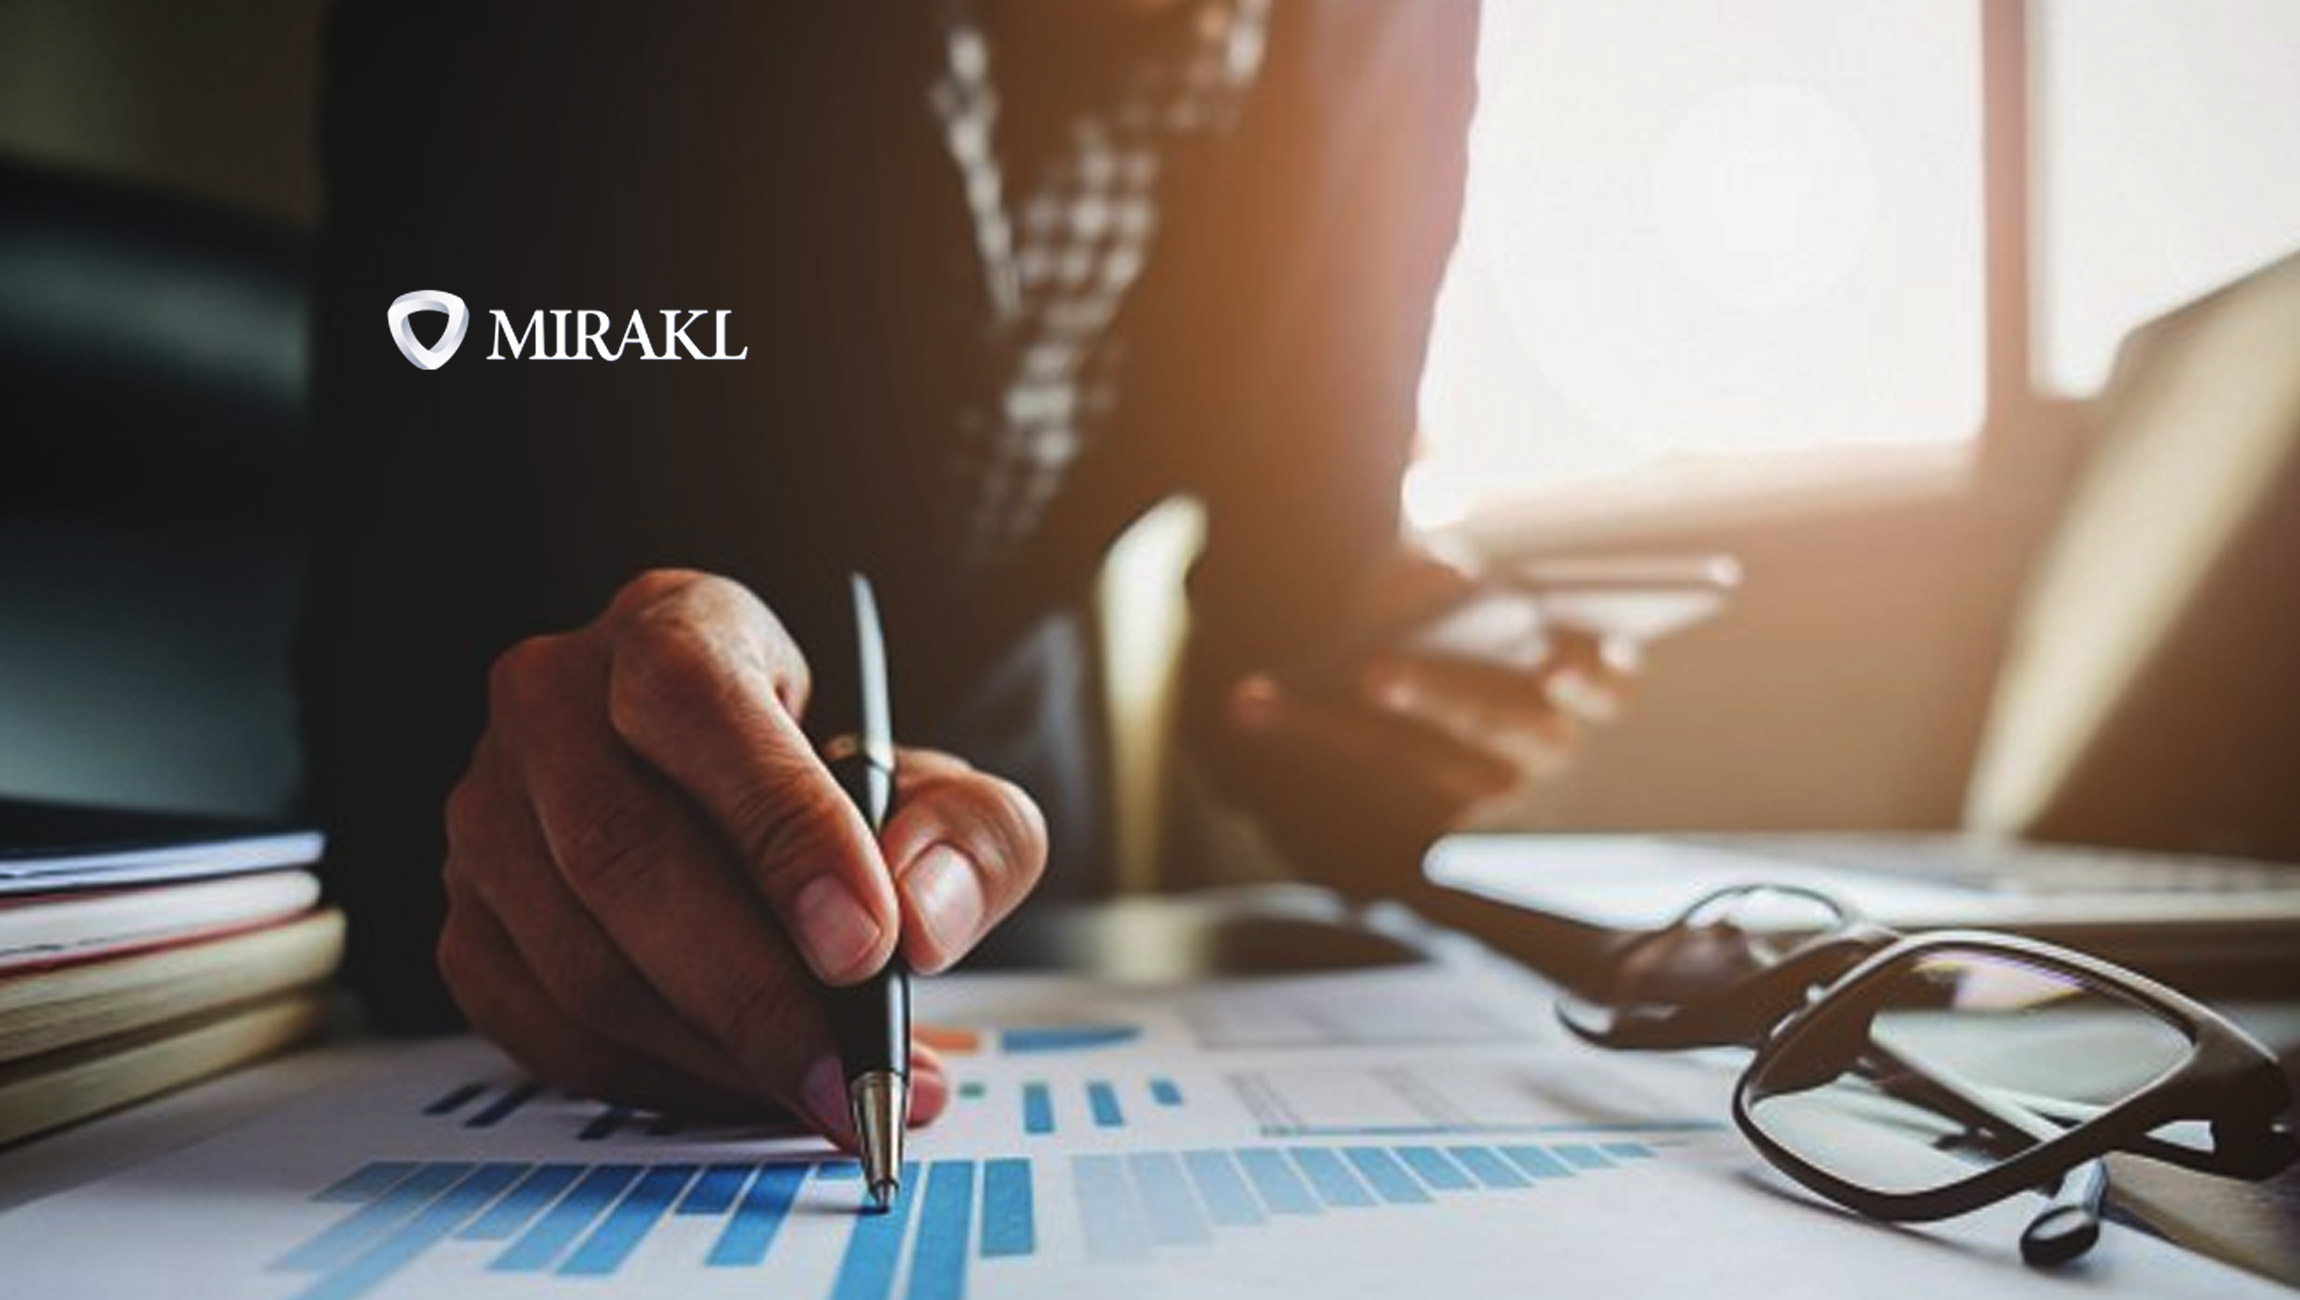 Mirakl Introduces New Advanced Features to Industry-leading Marketplace Platform, Empowering B2C and B2B Enterprises to Accelerate Profitable eCommerce Growth